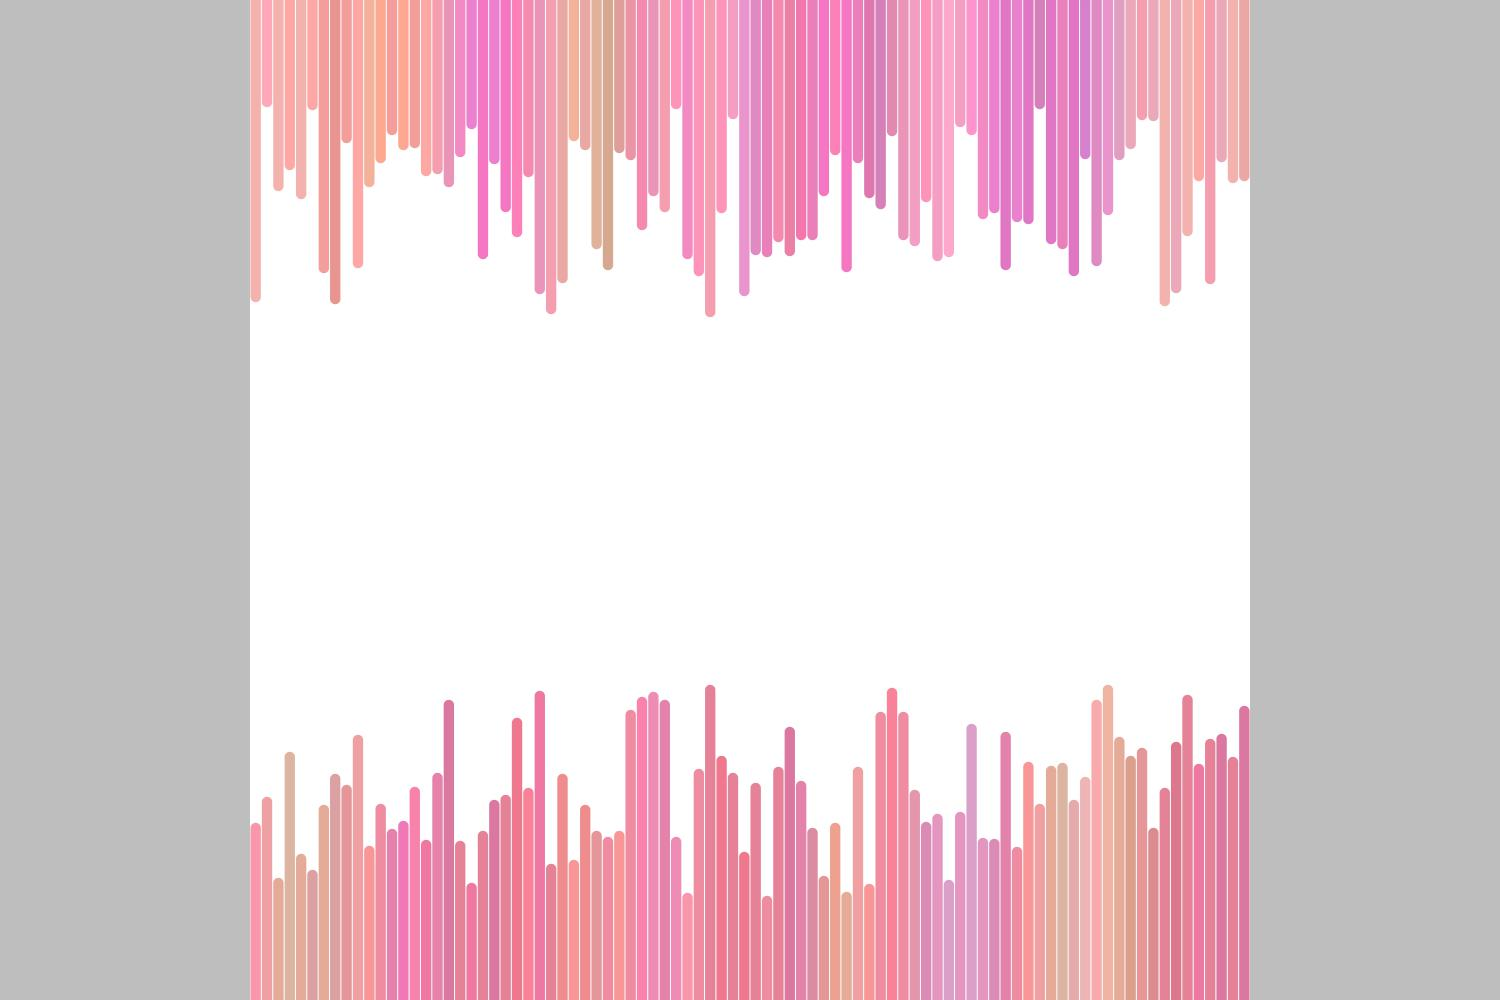 Download Free Background With Pink Vertical Lines Graphic By Davidzydd for Cricut Explore, Silhouette and other cutting machines.